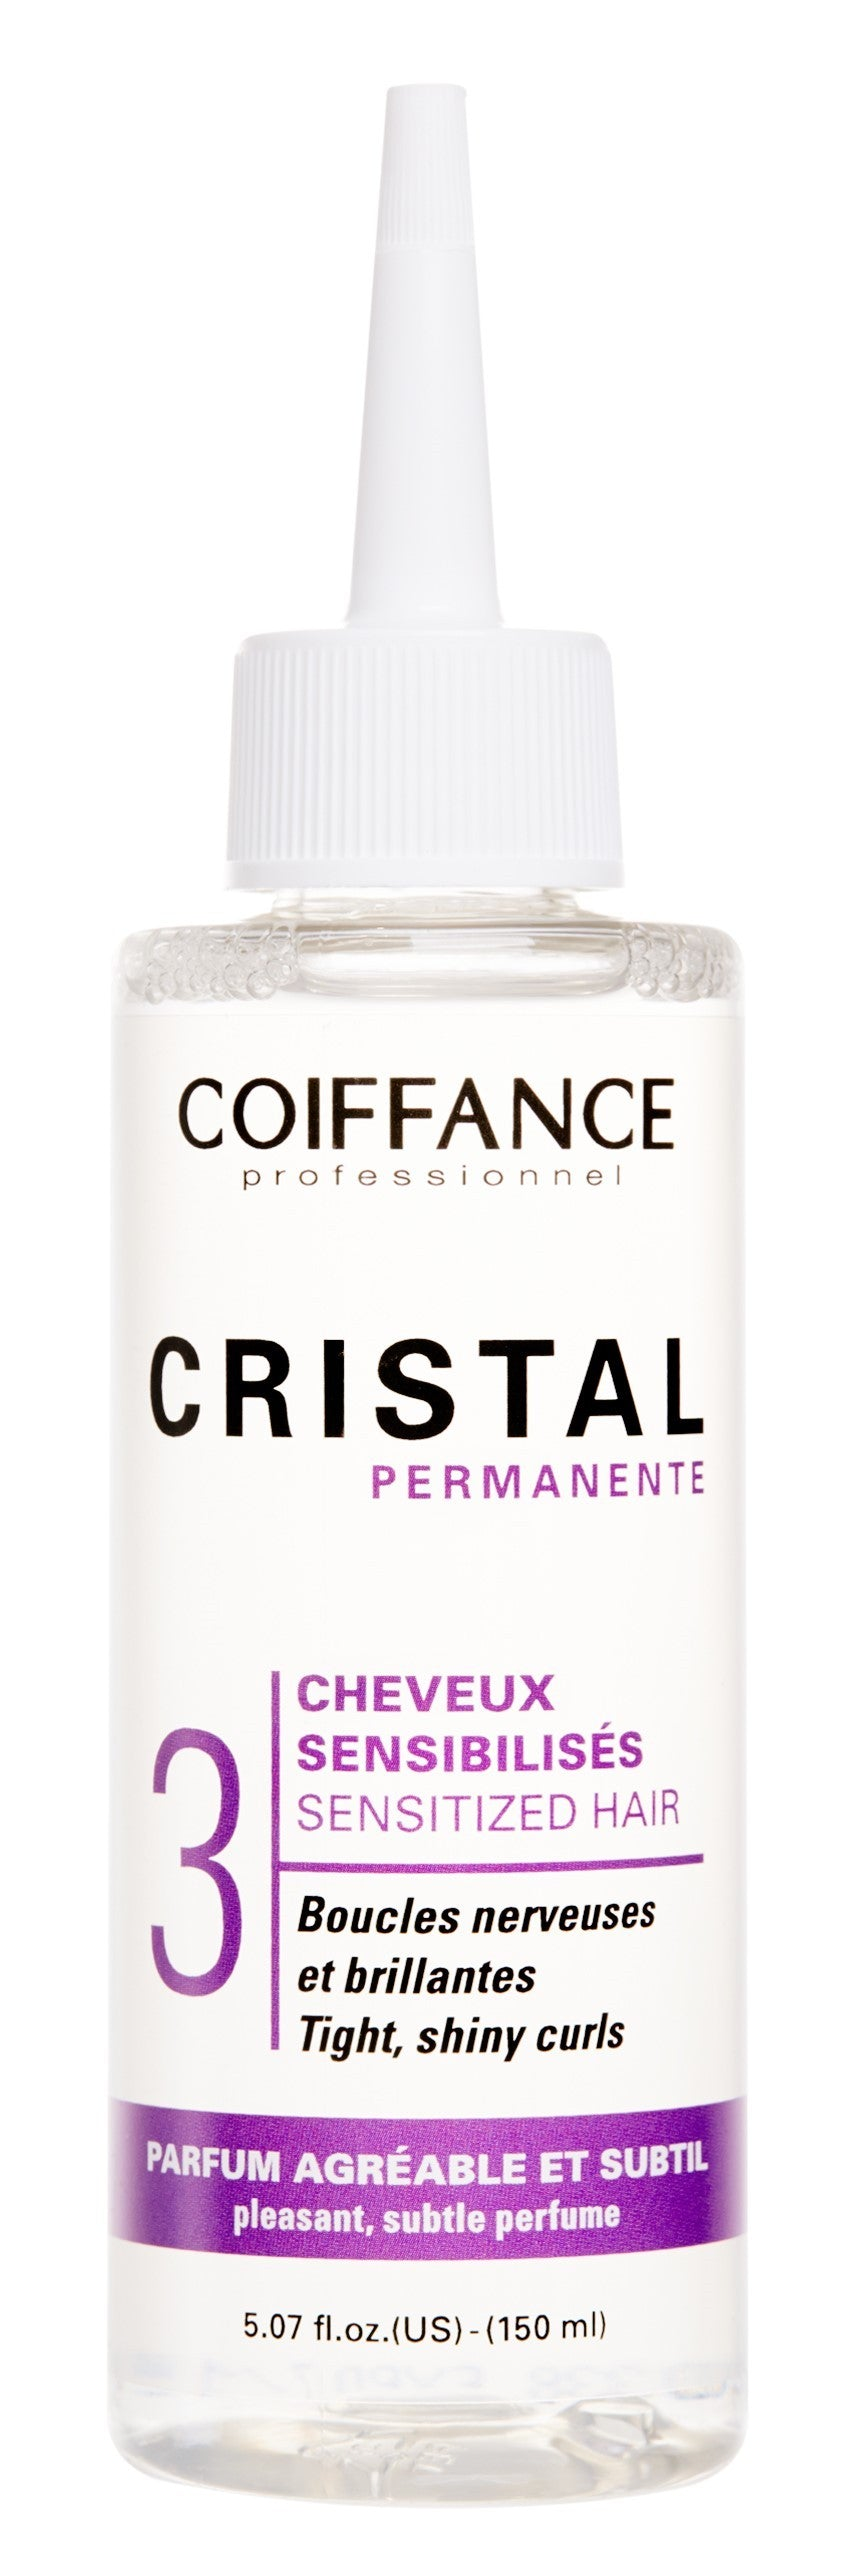 Coiffance -  Cristal Perm force 3 -  sensitized, highlighted hair 150ML